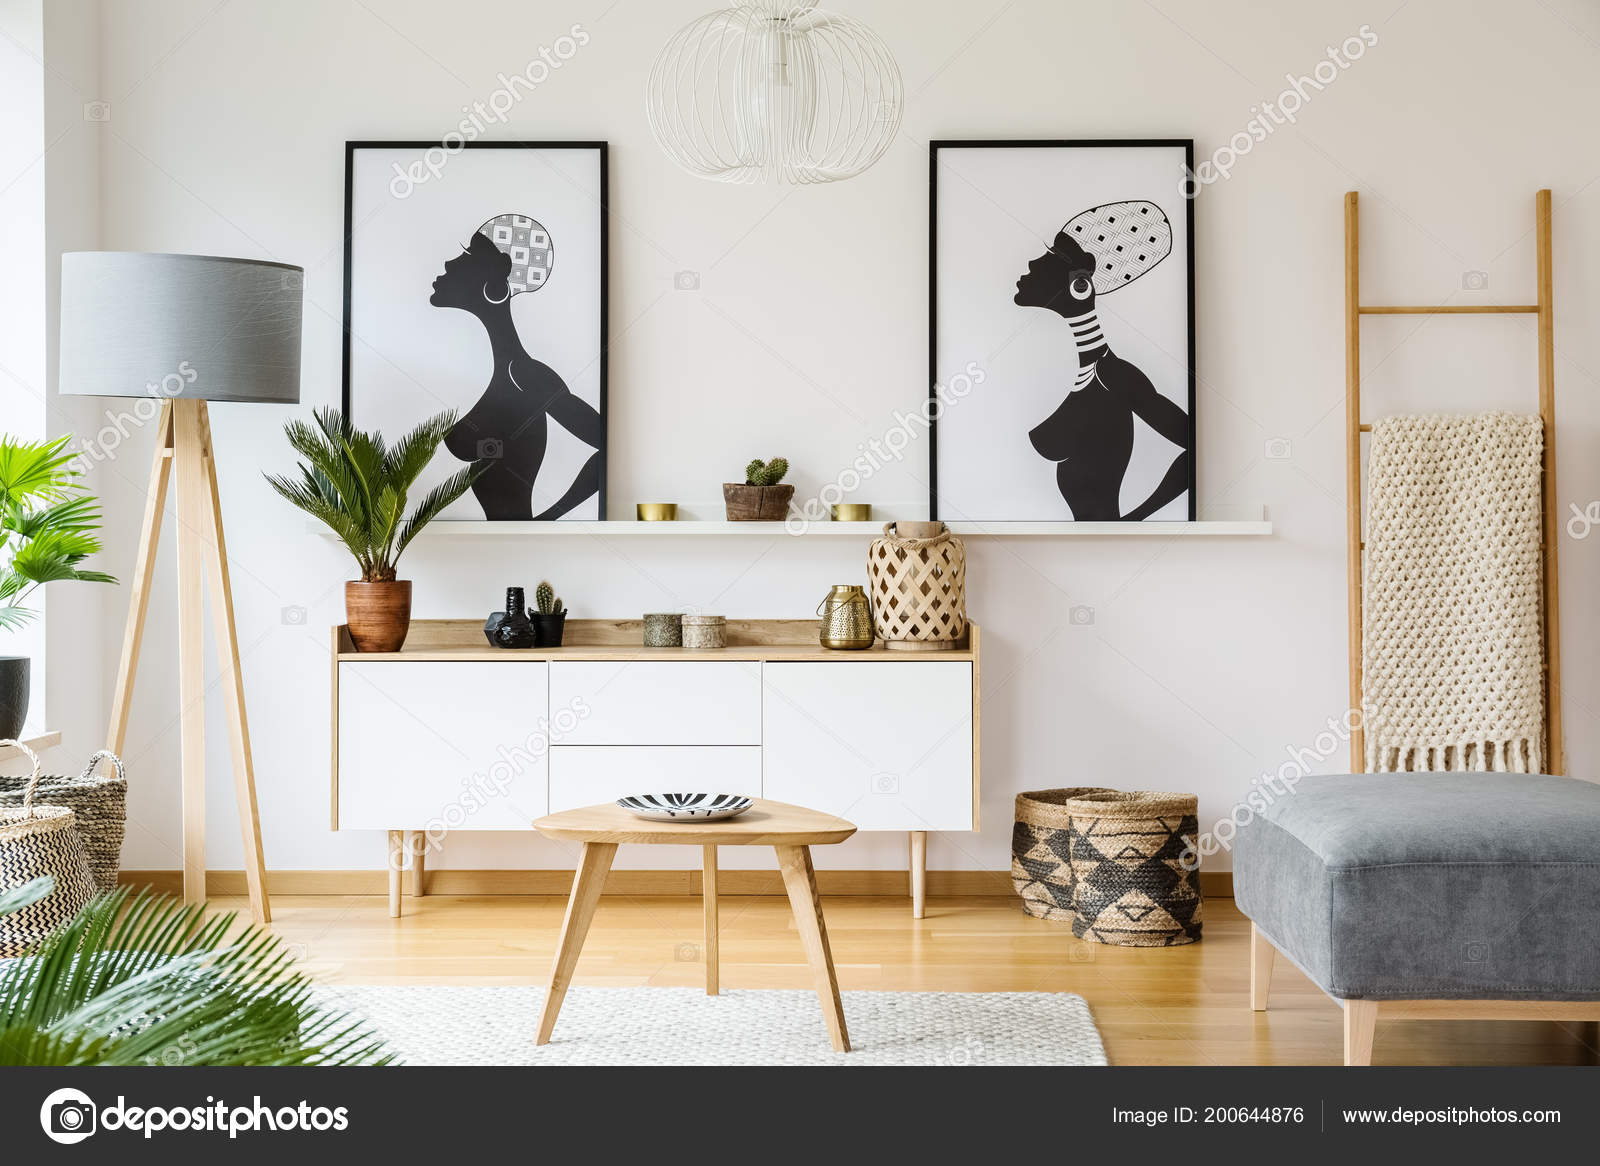 Black White African Posters Cabinet Living Room Interior ...